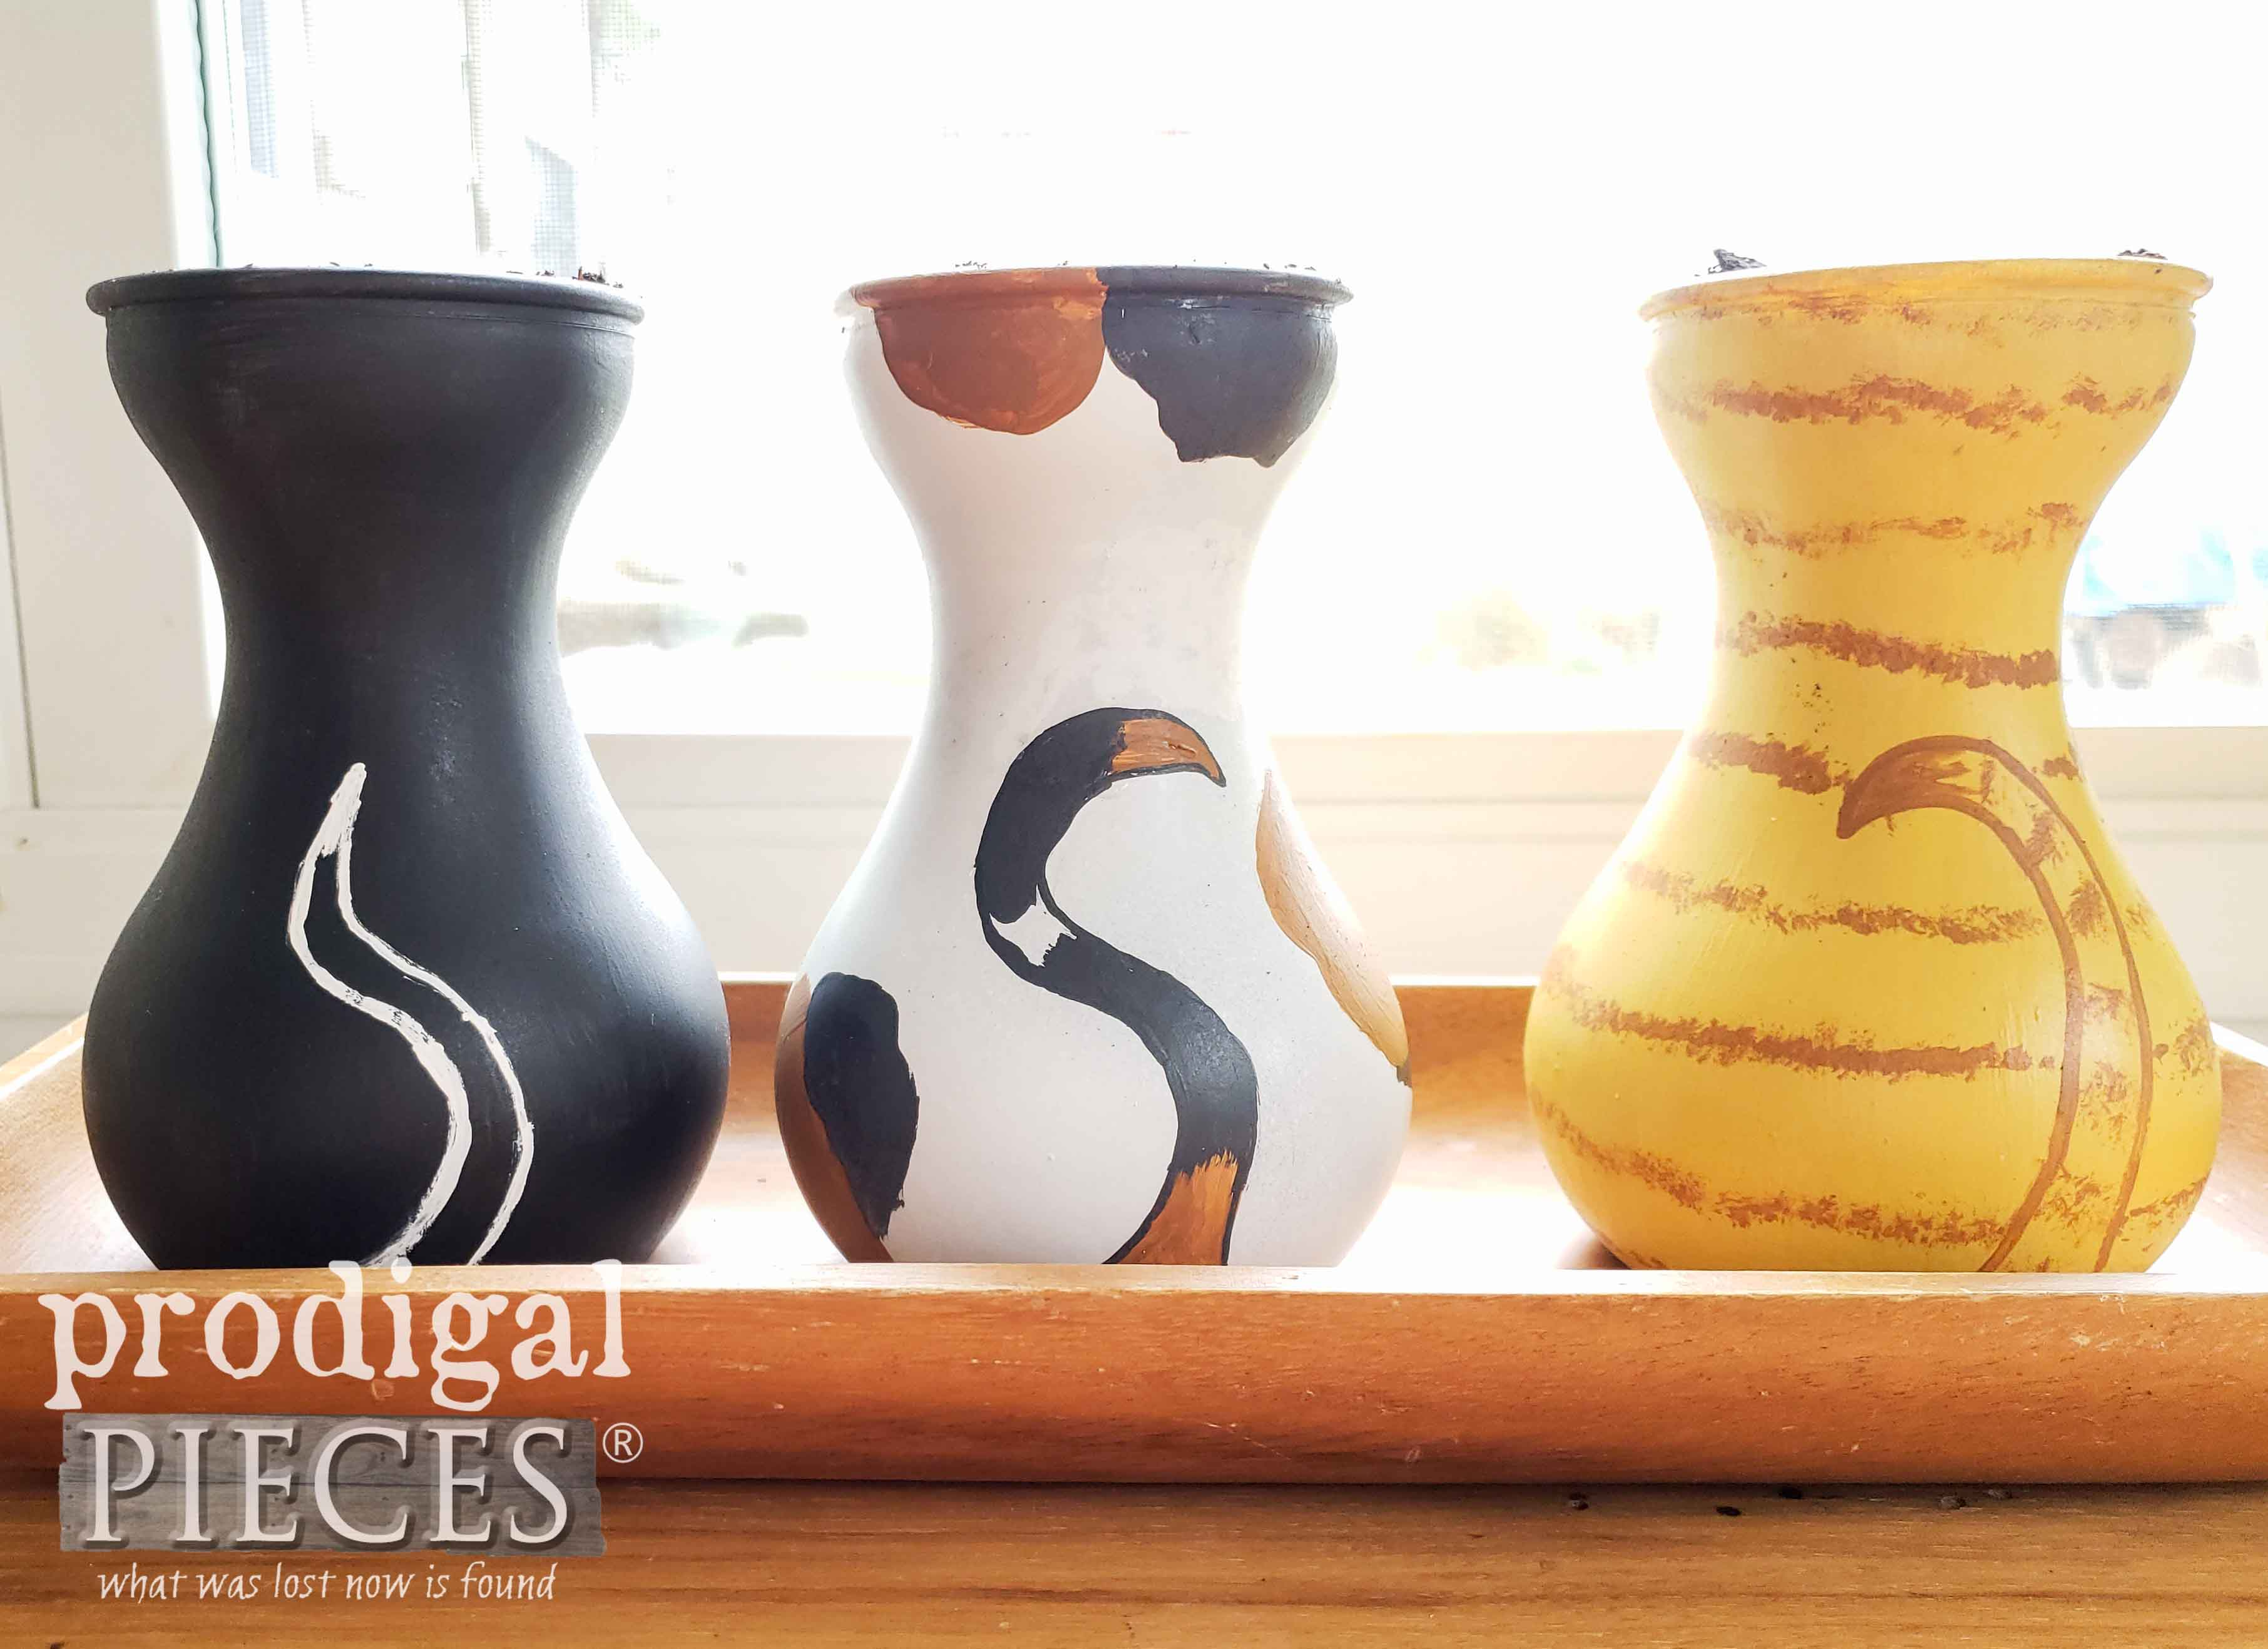 Adorable Cat Grass Vases created by Larissa of Prodigal Pieces | prodigalpieces.com #prodigalpieces #pets #cats #dogs #health #home #homedecor